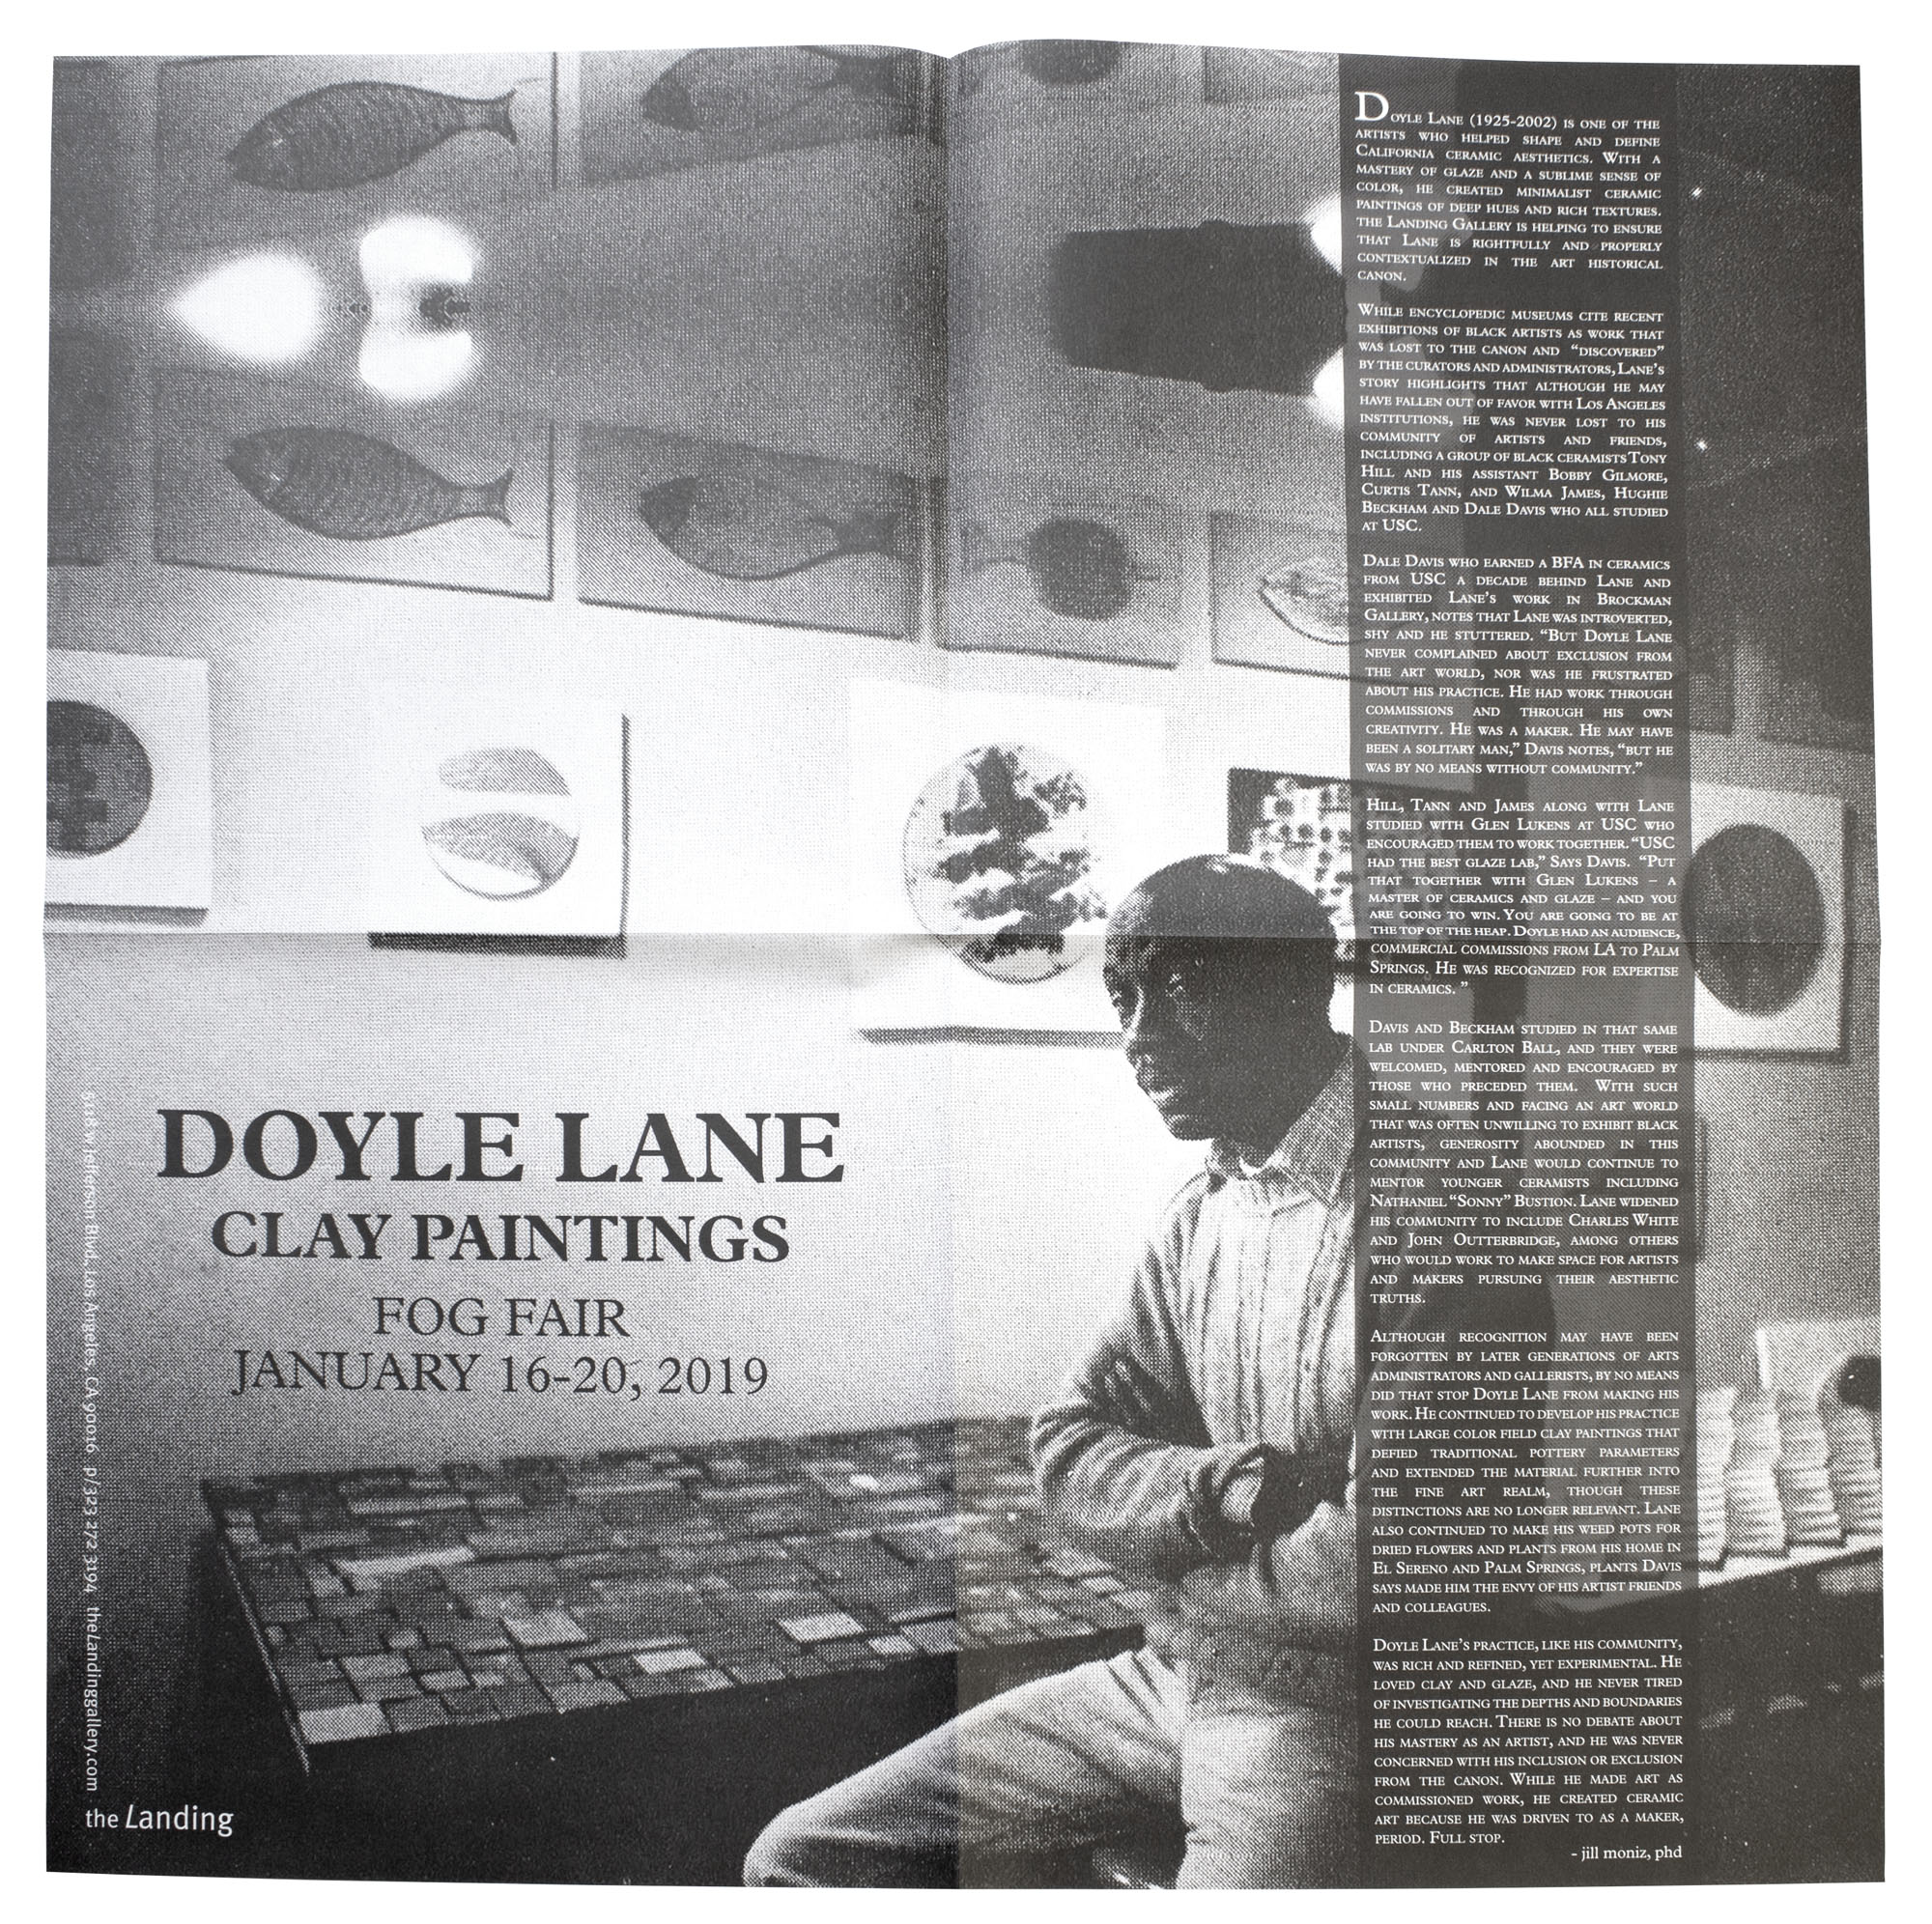 Doyle Land Poster - The Landing